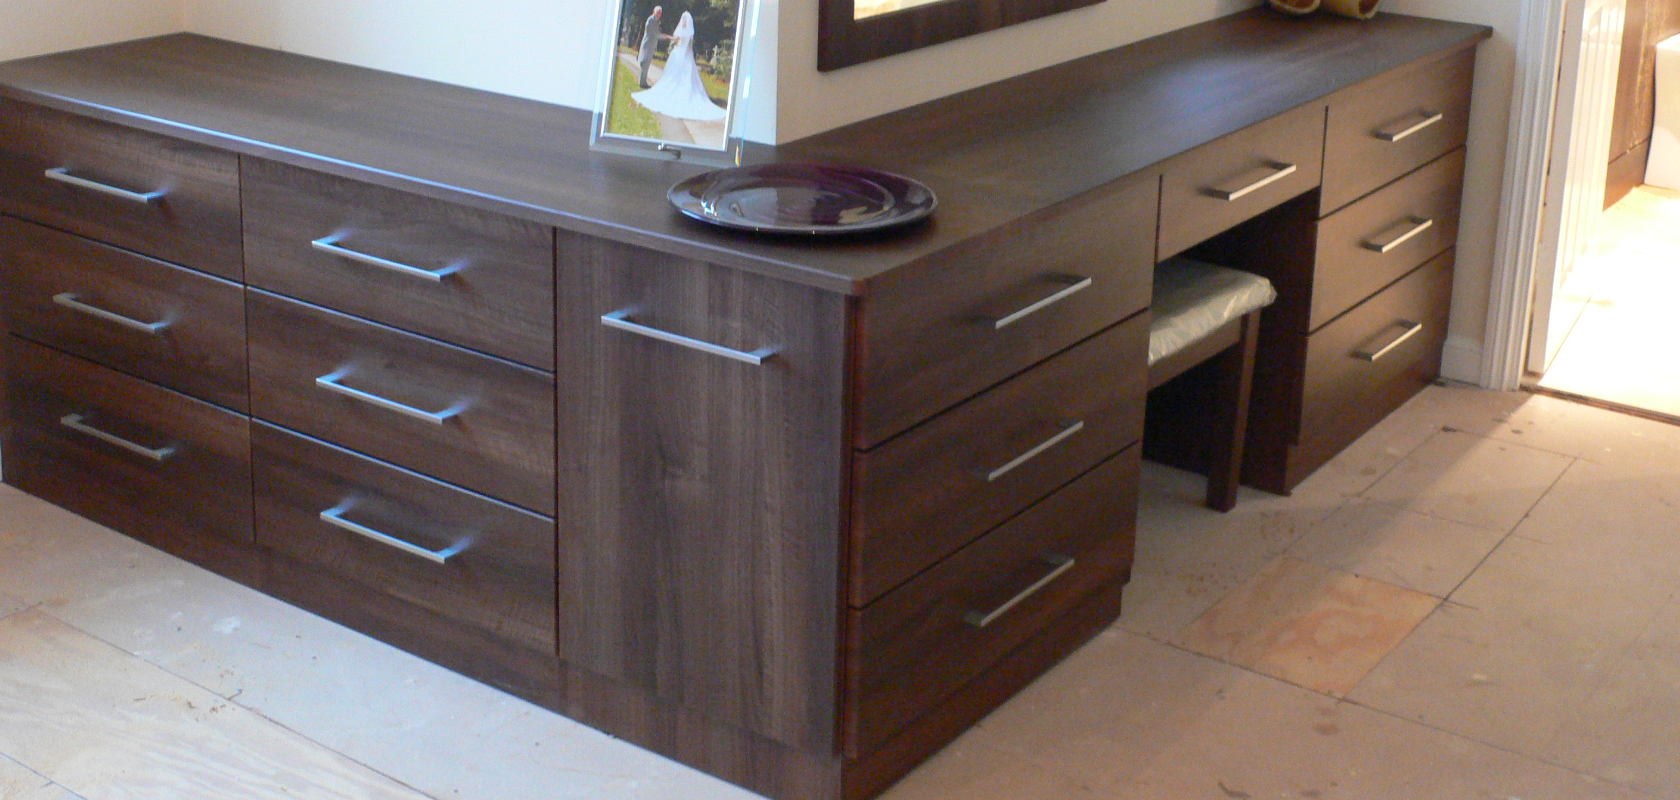 Gta Office Furniture Rugby Bespoke Fitted Bedrooms Wardobes Home Offices And